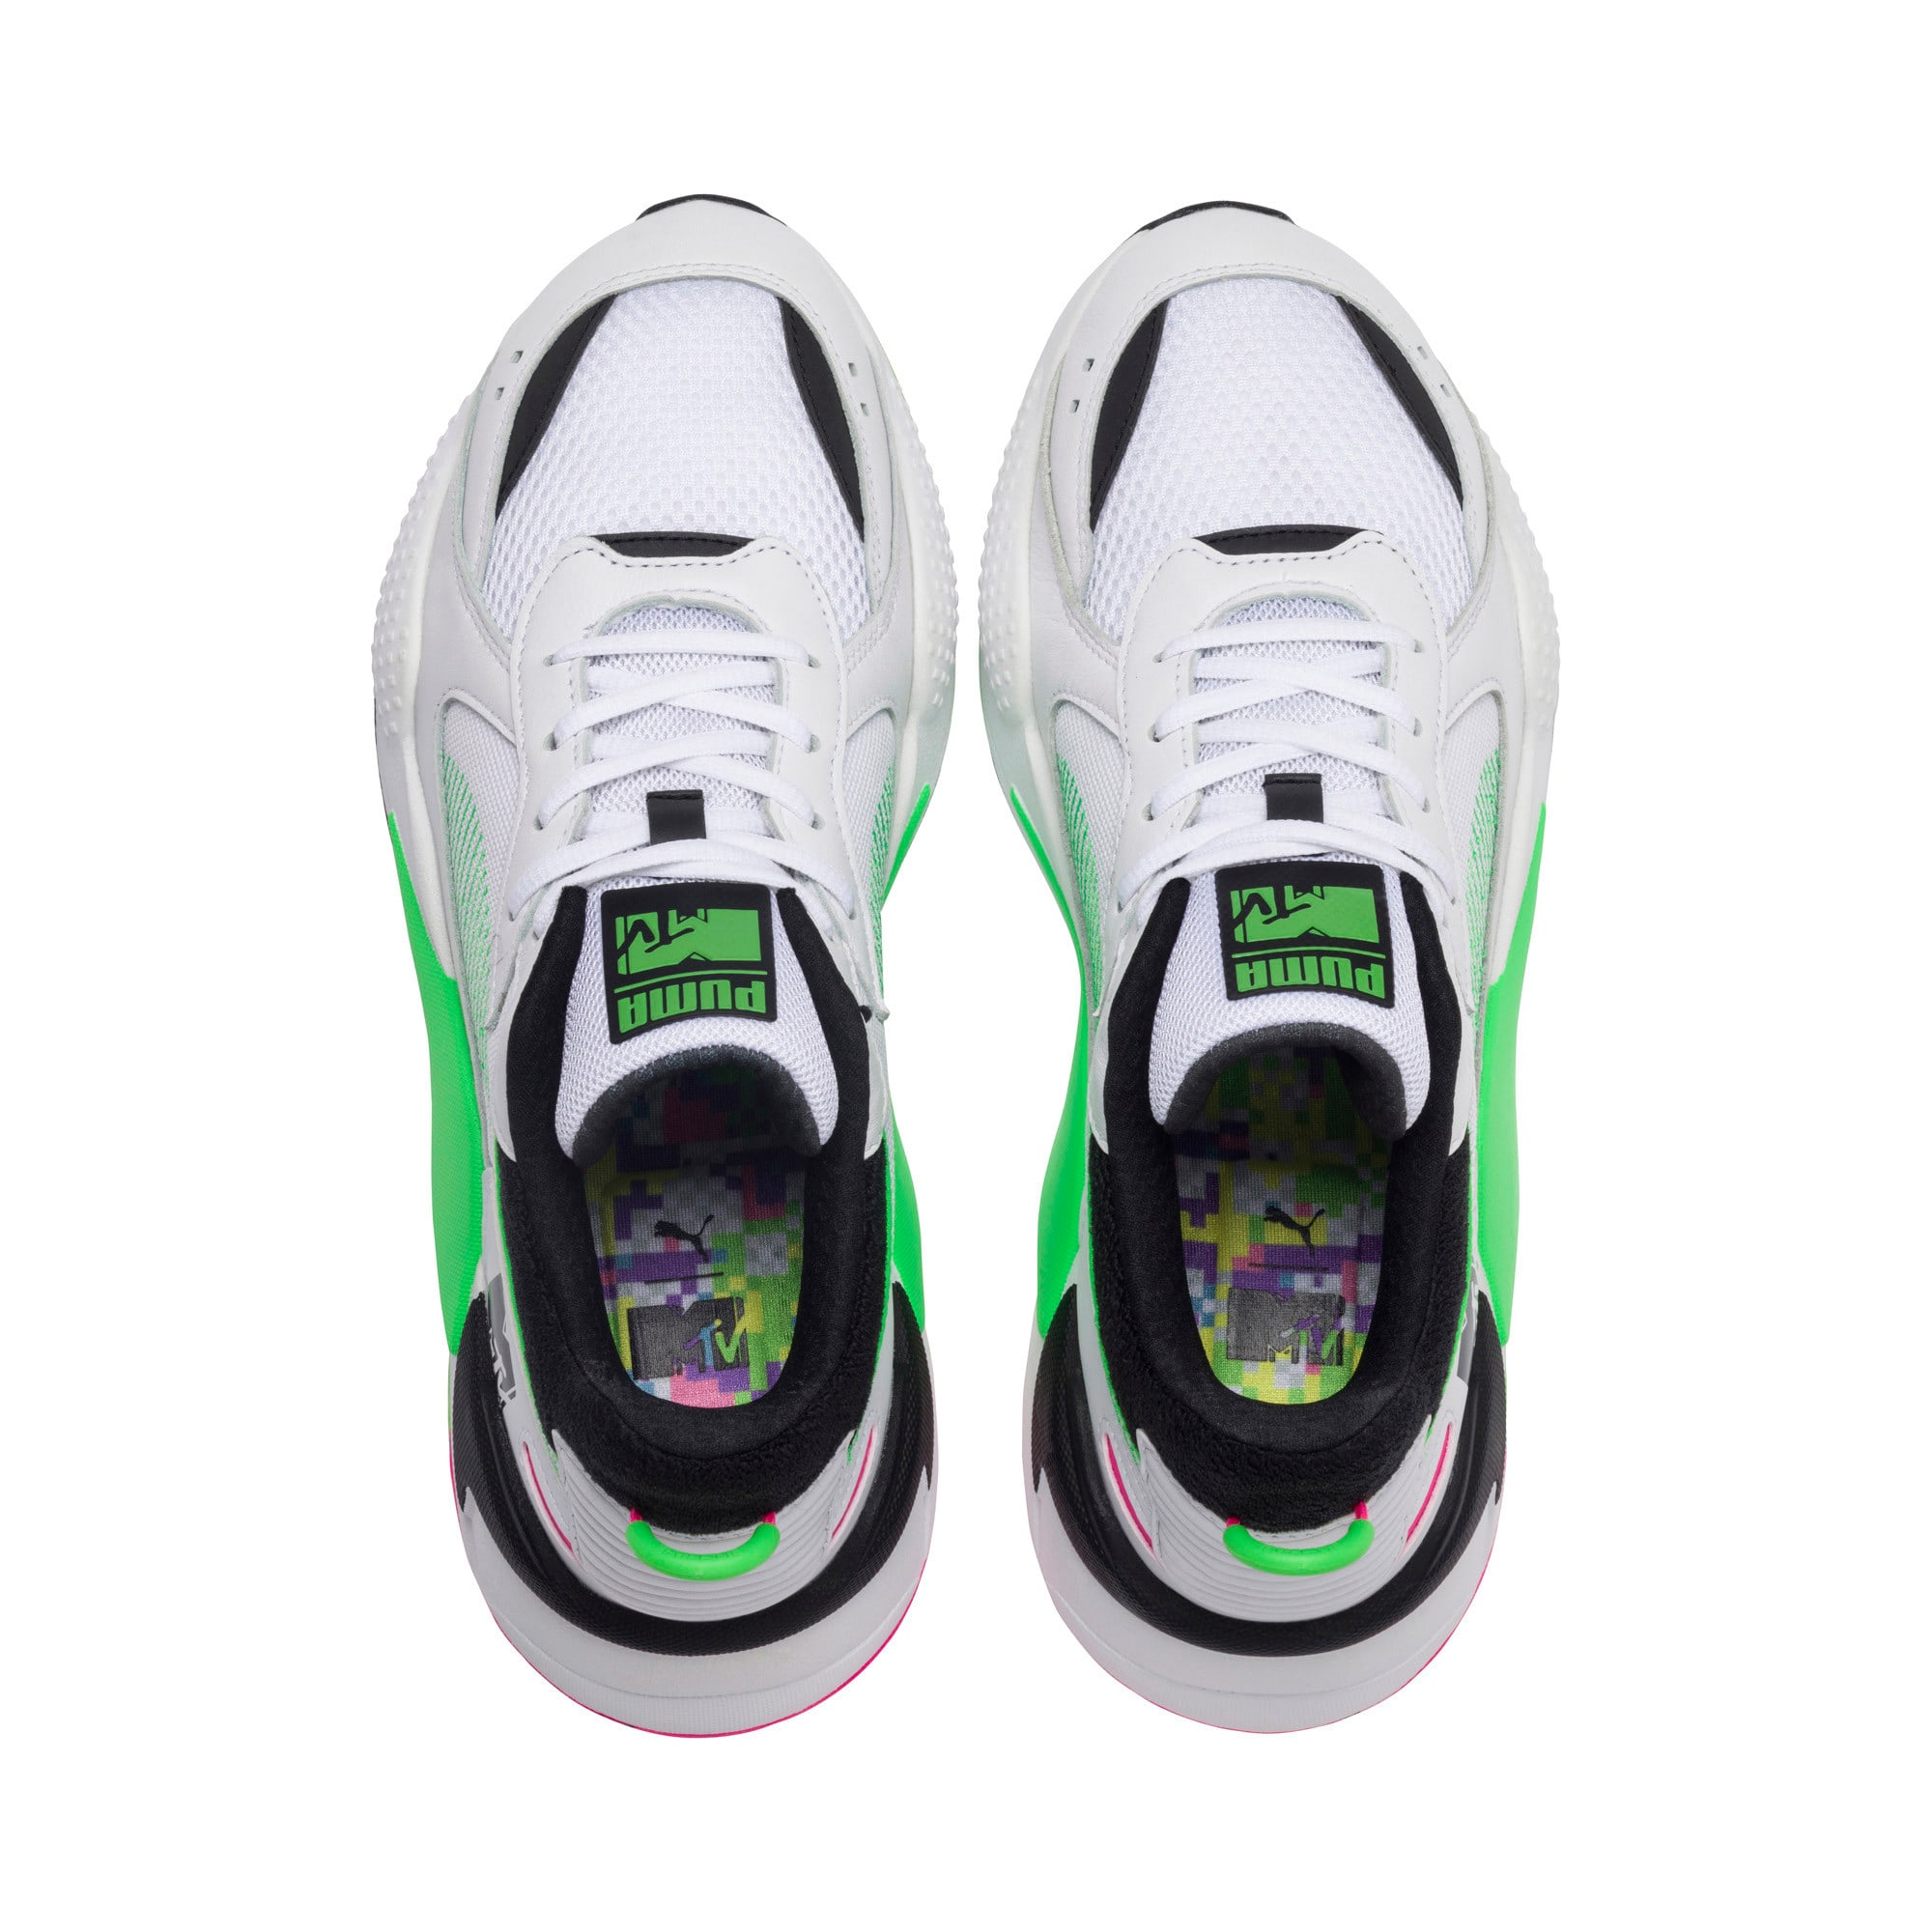 Thumbnail 6 of PUMA x MTV RS-X Tracks Yo! Raps Europe Sneaker, Puma White-802 C Fluro Green, medium